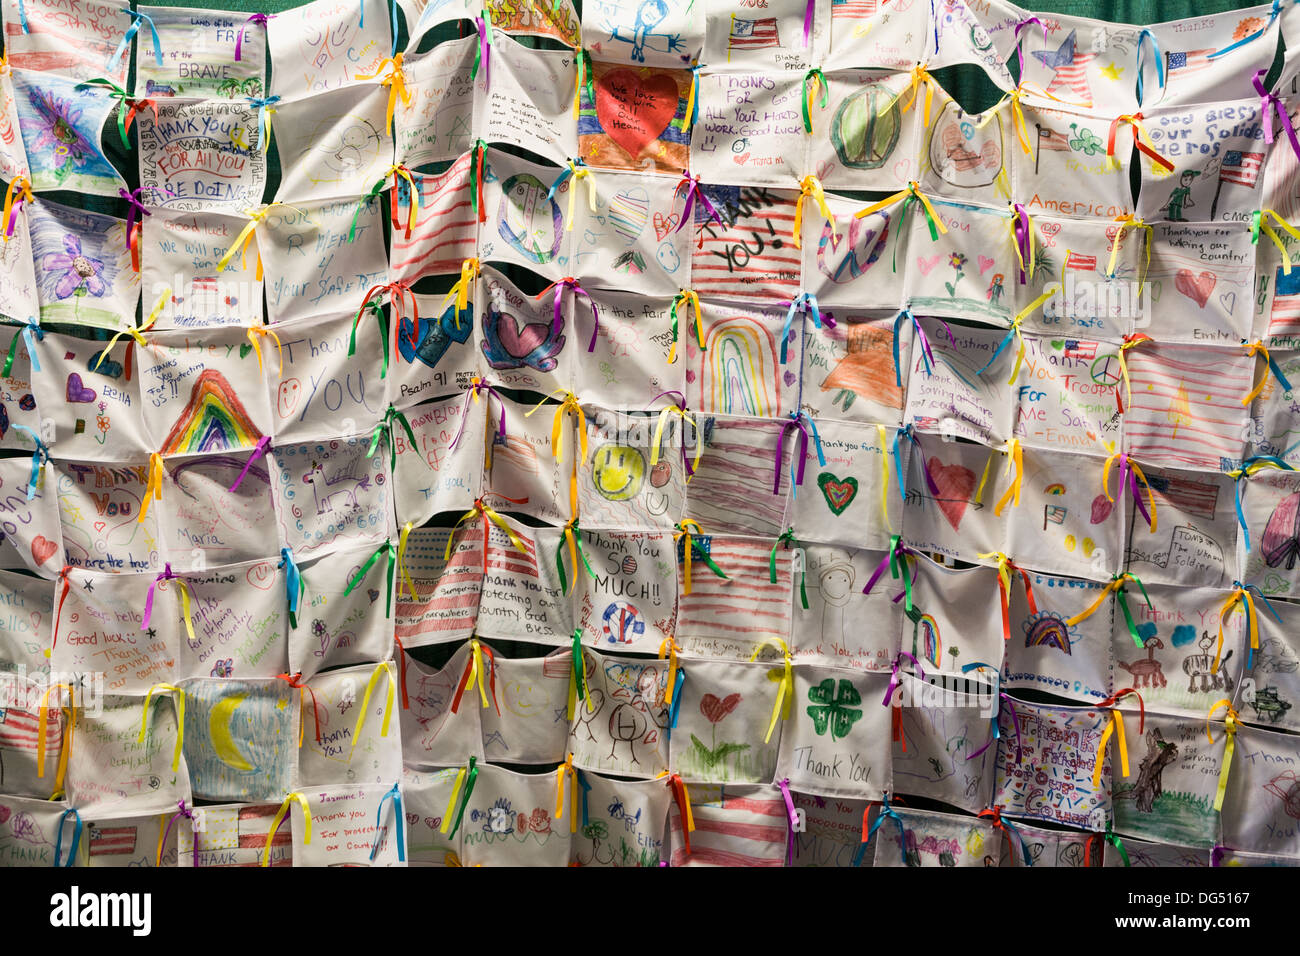 4H quilt honoring veterans, Great New York State Fair, Syracuse. - Stock Image